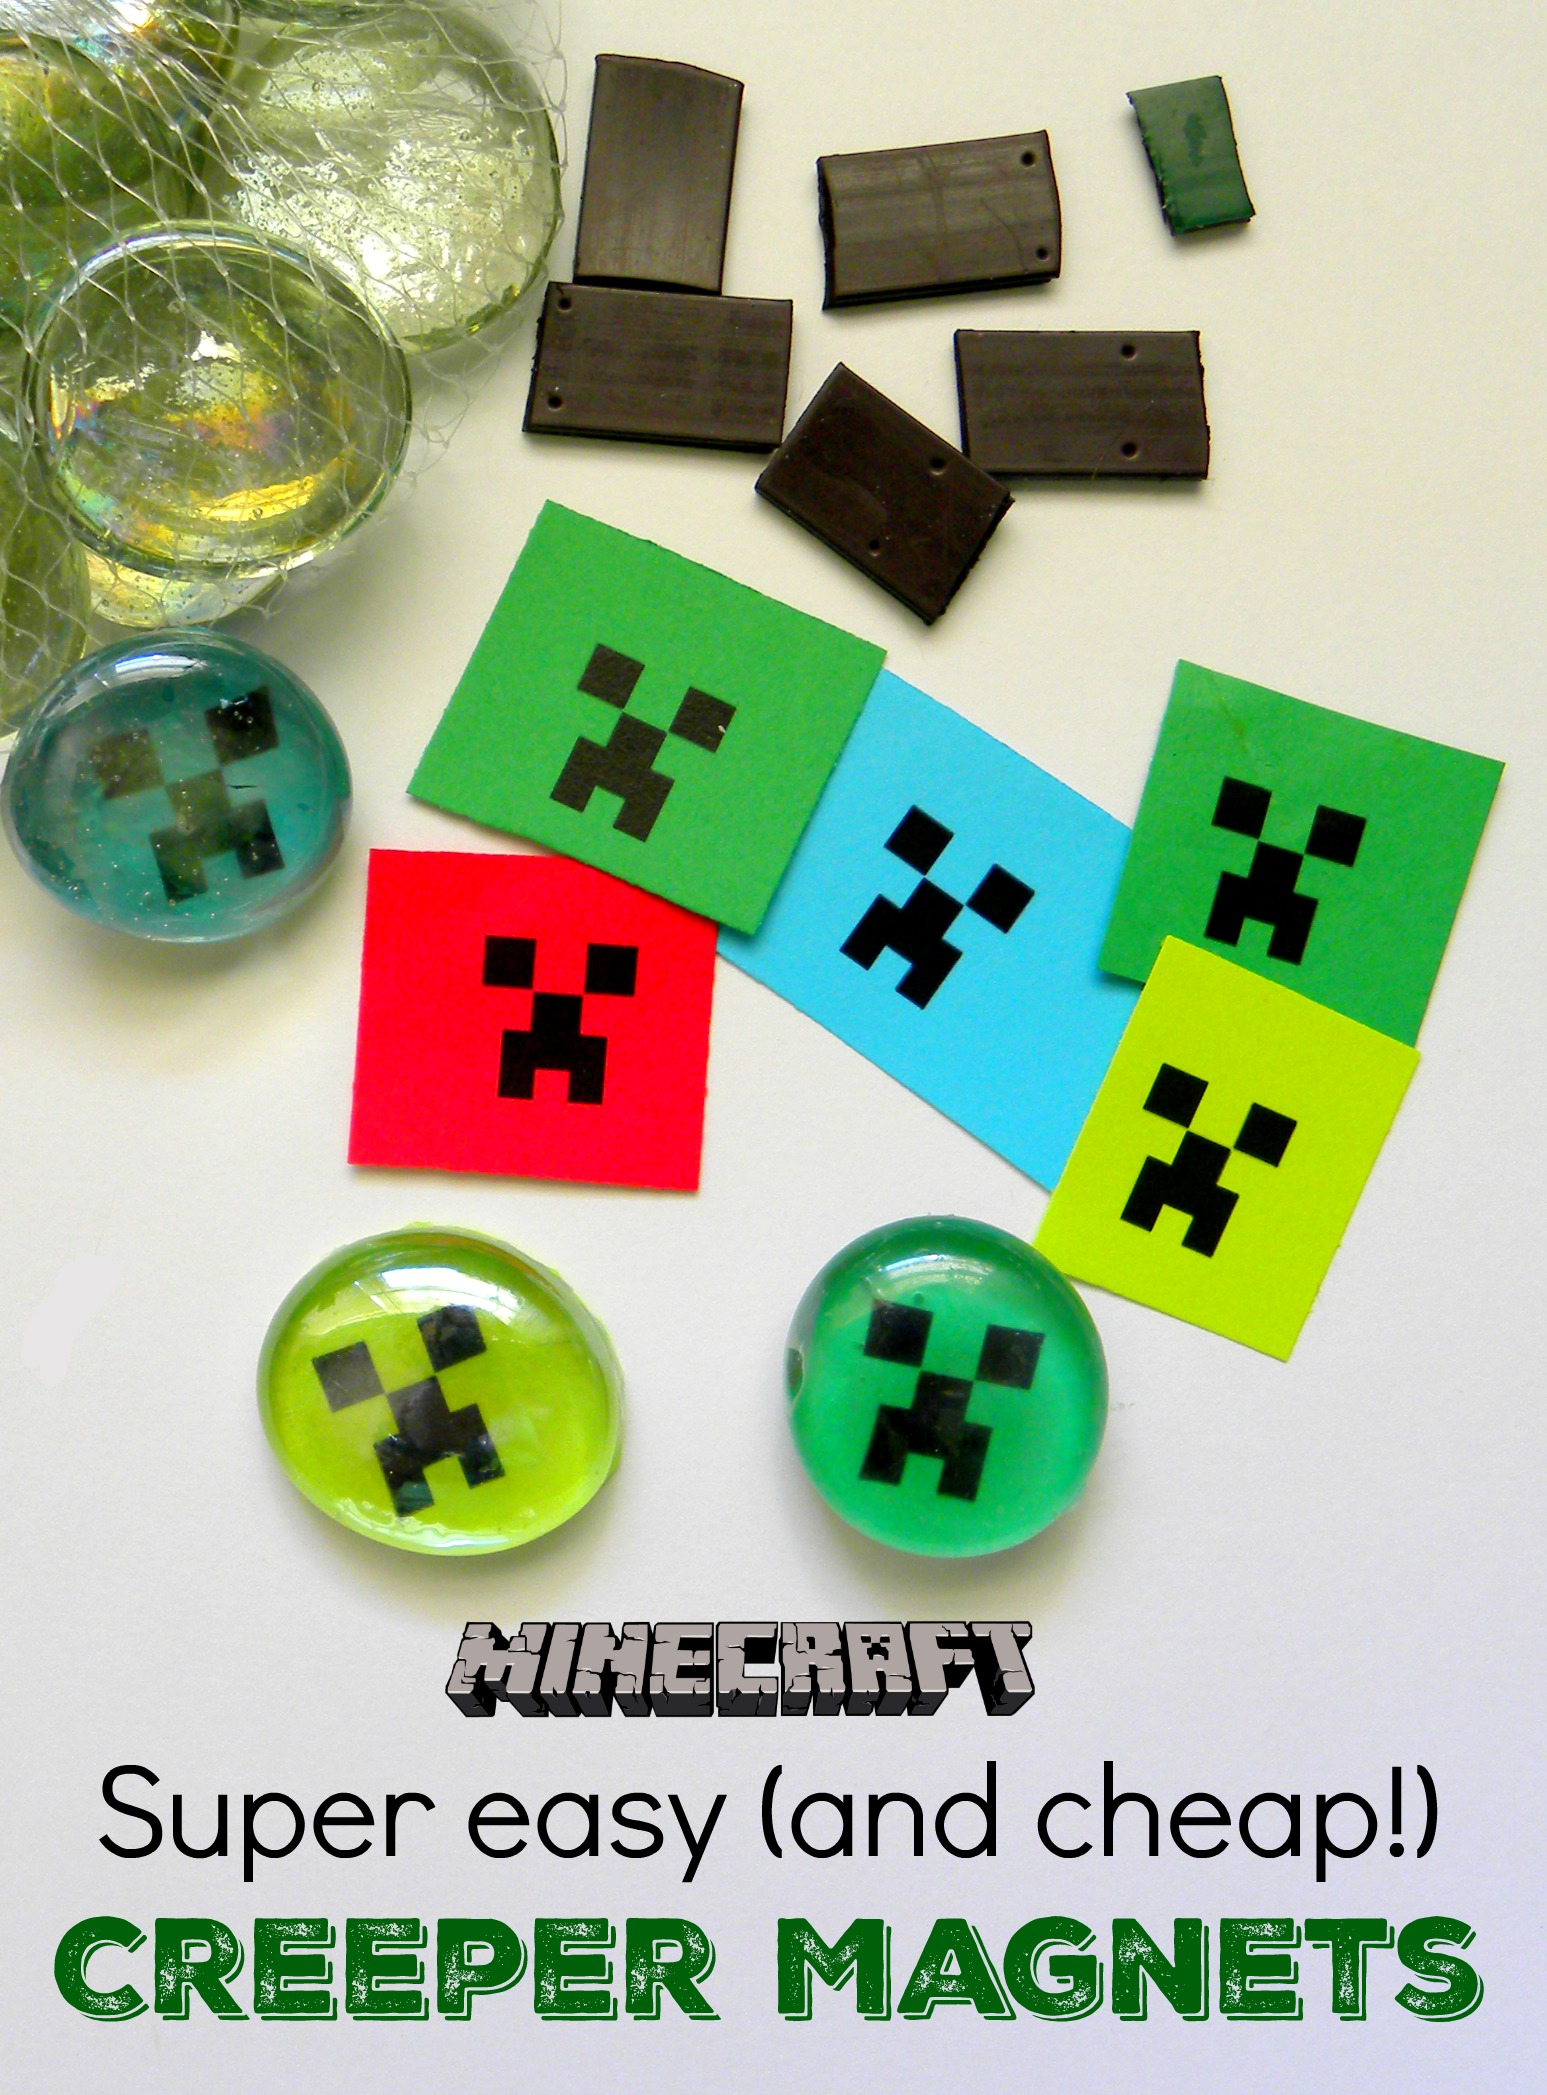 Minecraft madness crafts for parties classrooms or libraries minecraft magnets great party favor or craft solutioingenieria Images